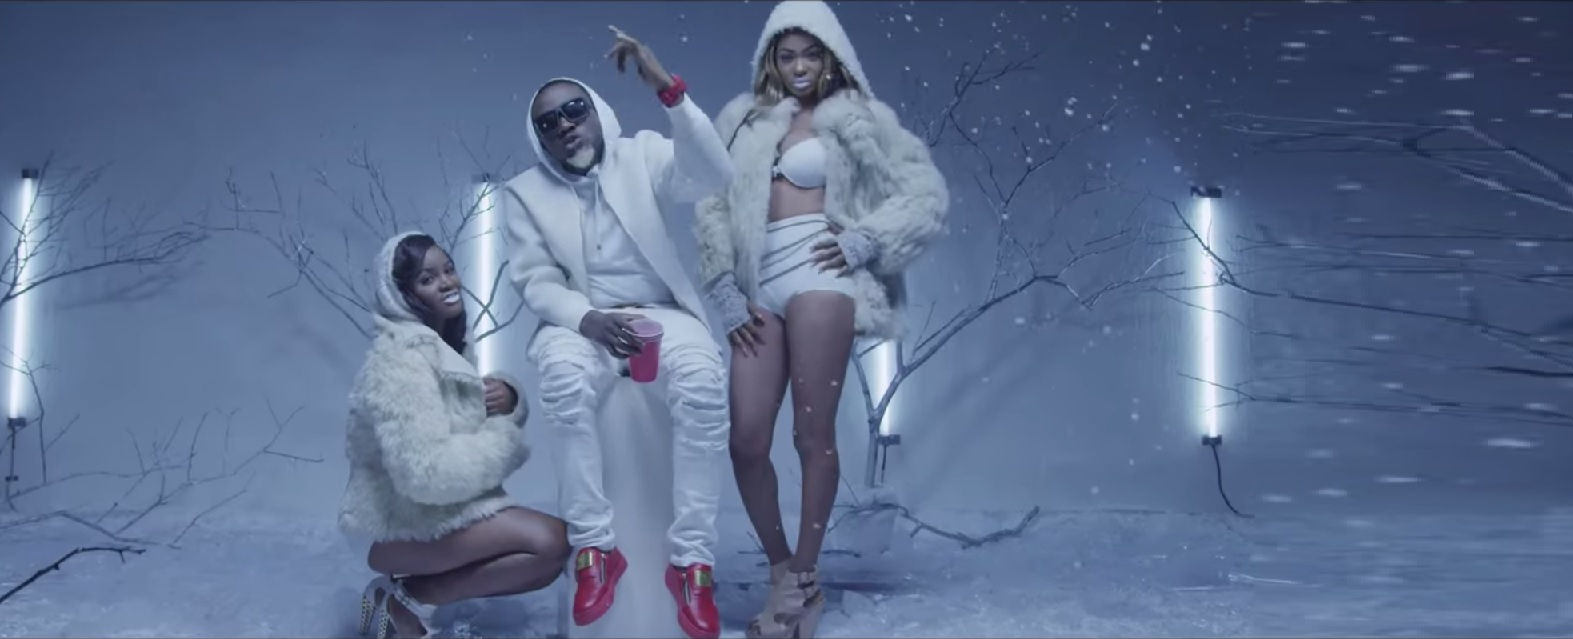 Ice Prince Mutumina Video